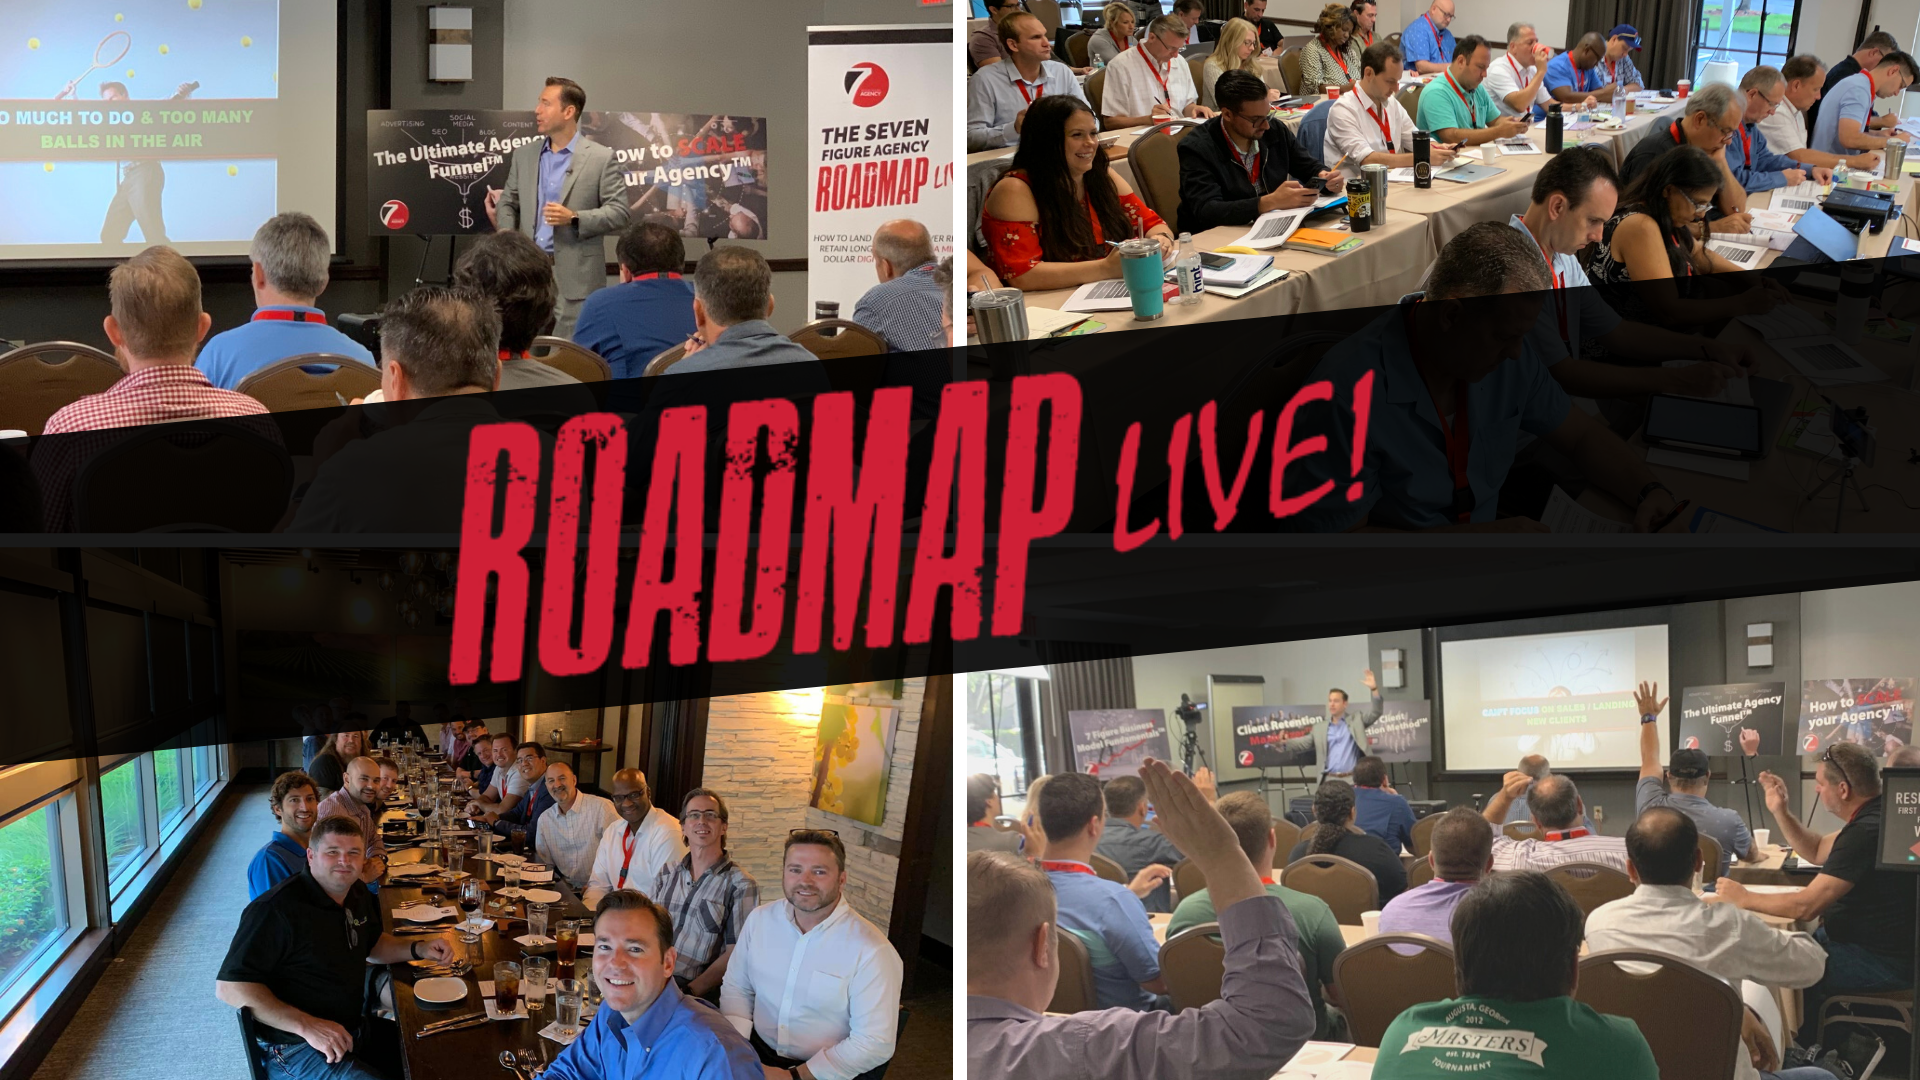 The Seven Figure Agency Roadmap Live Event